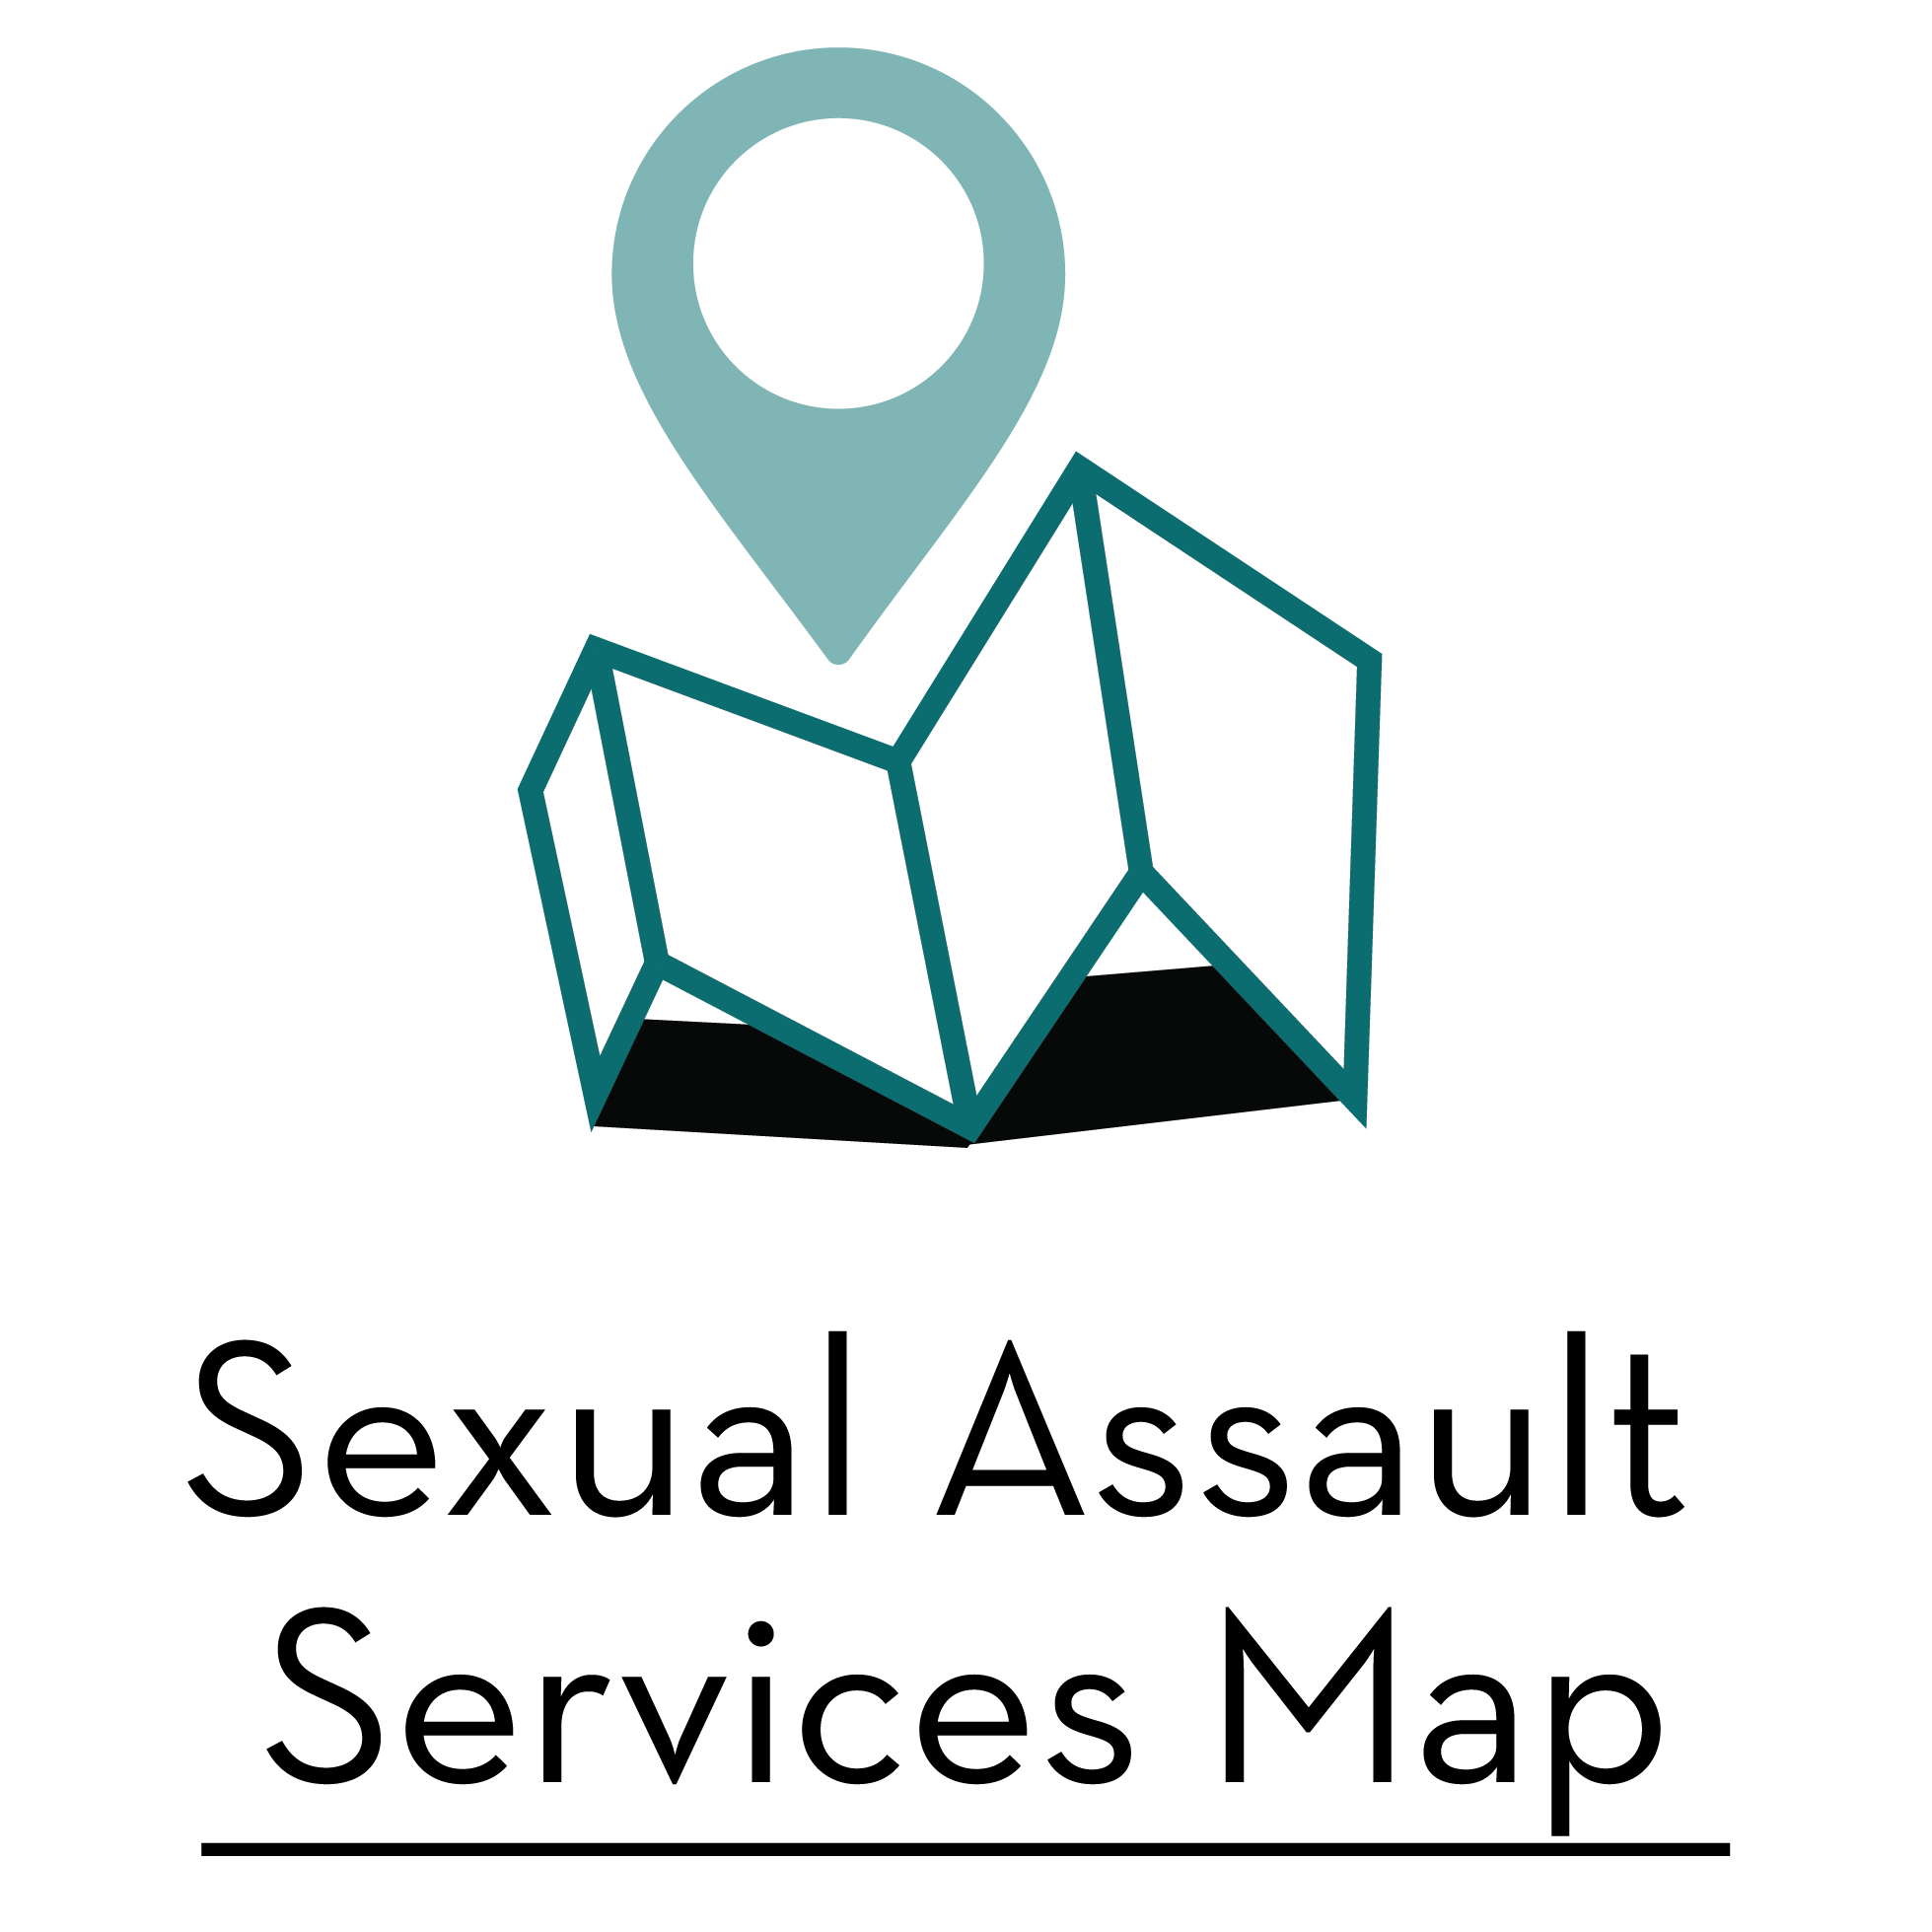 servicesmapsquare-01.png